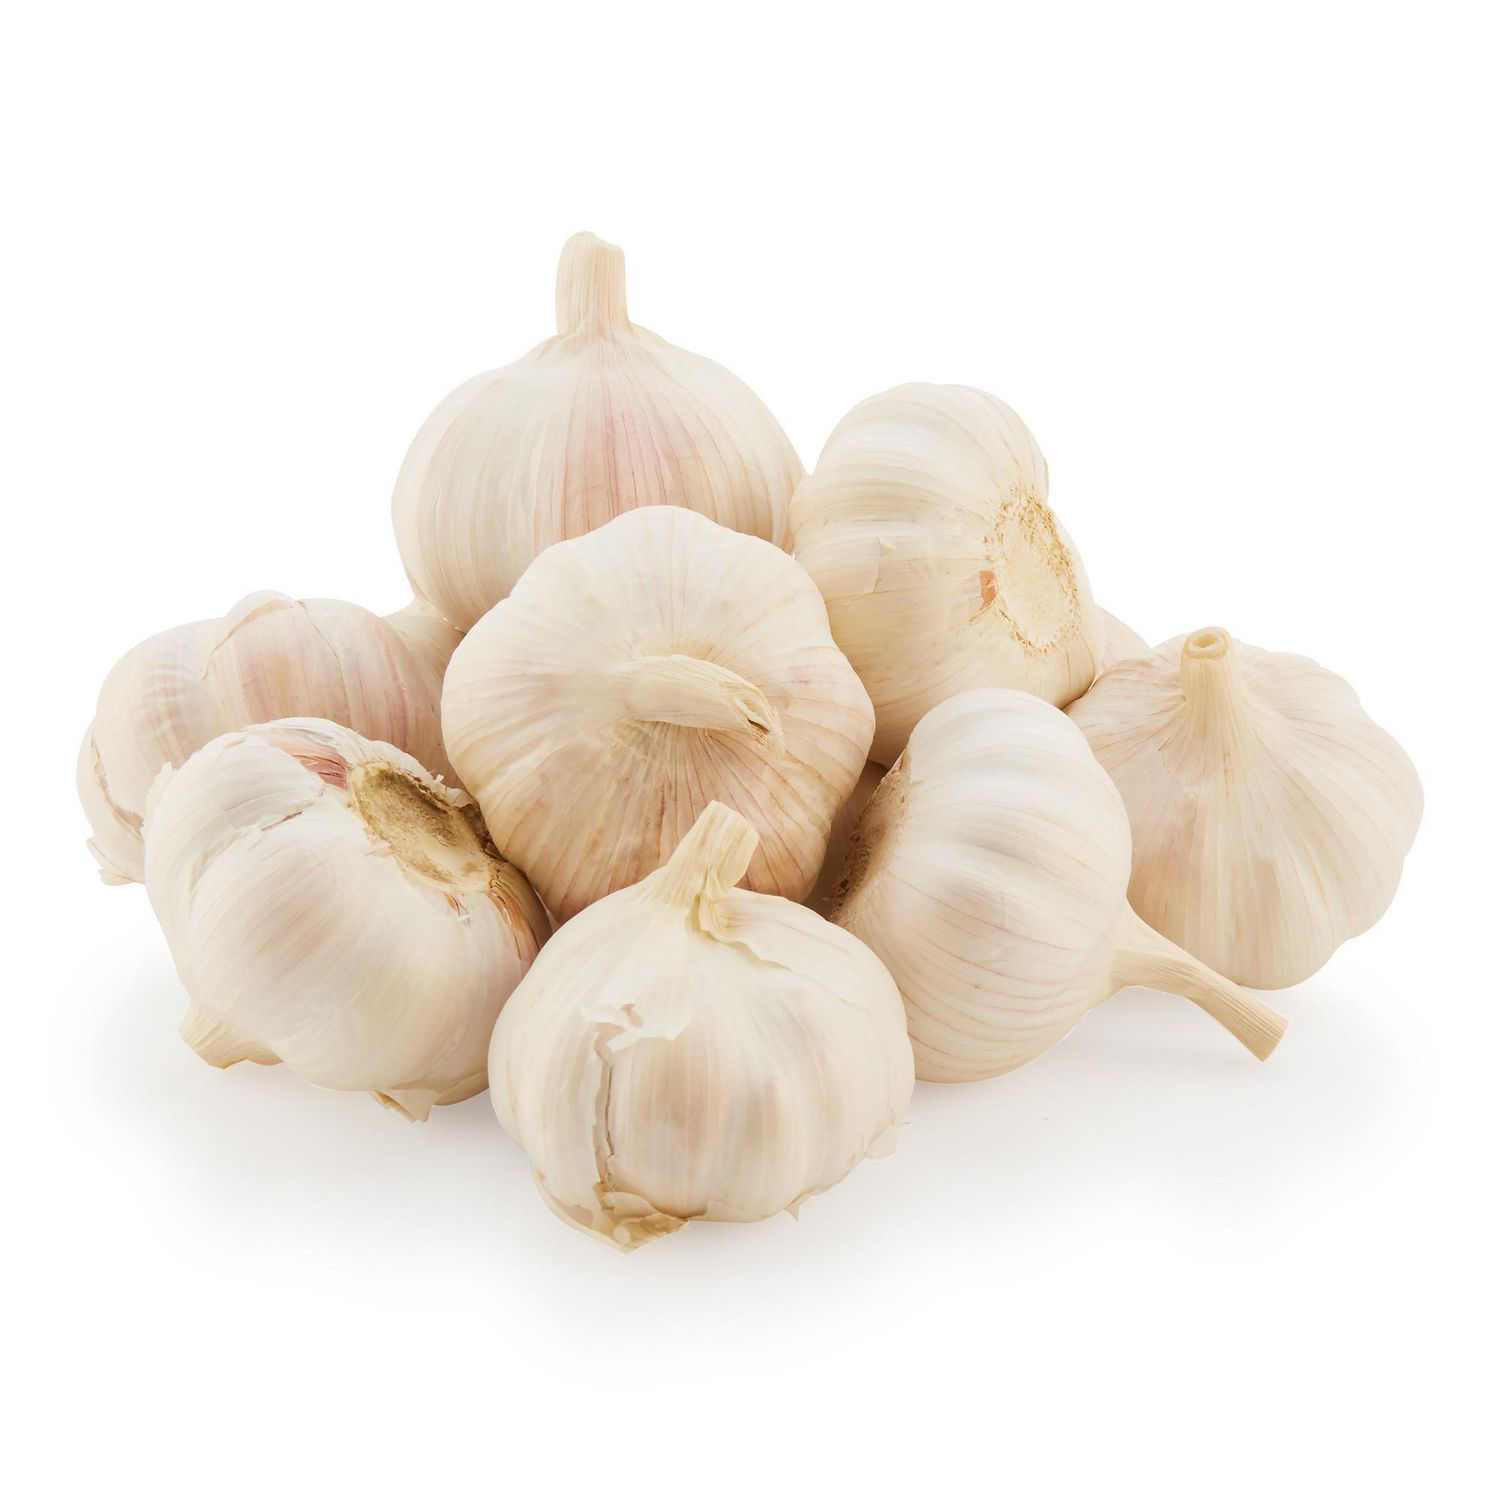 Buy Fresh Garlic Online | Walmart Canada